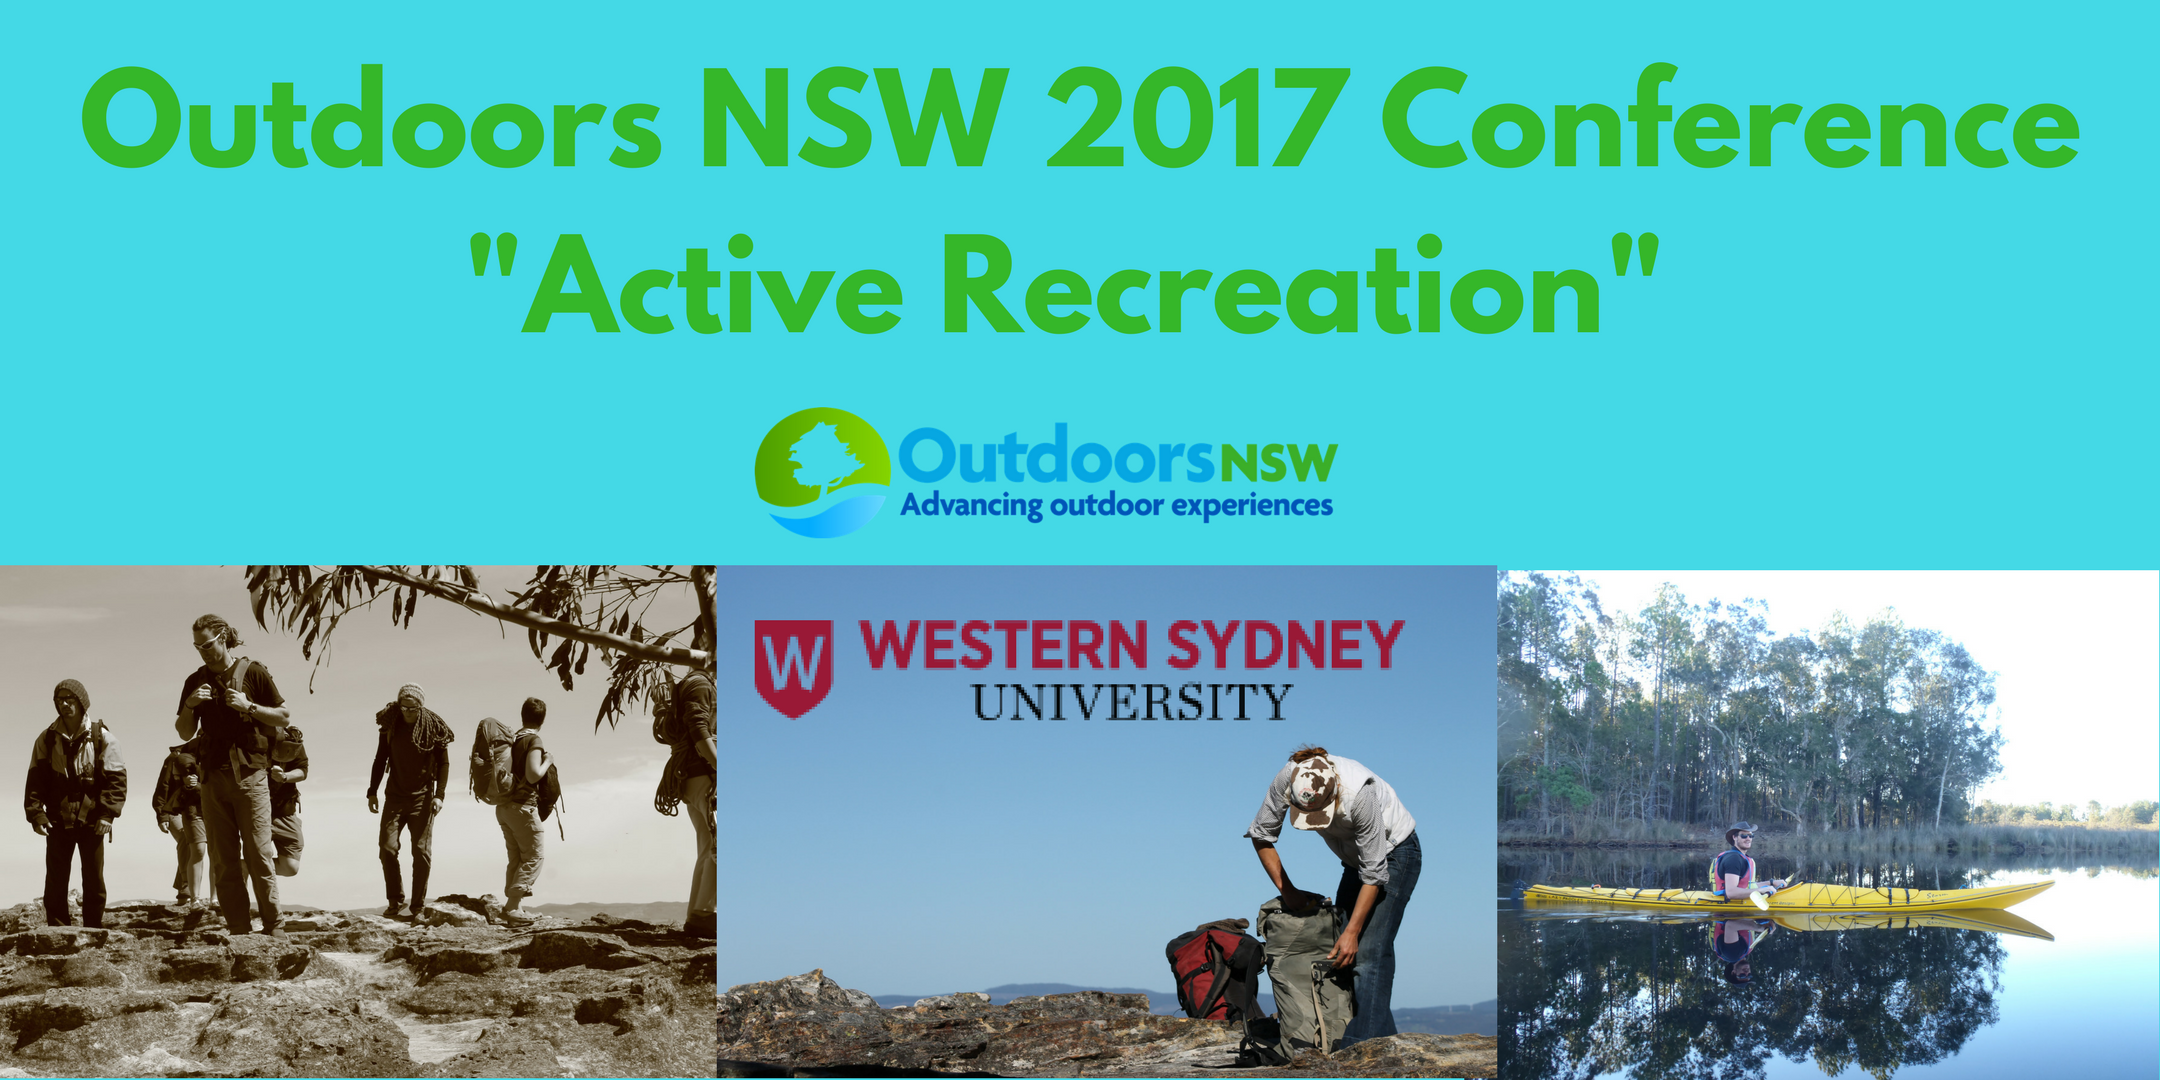 Outdoors NSW 2017 Conference